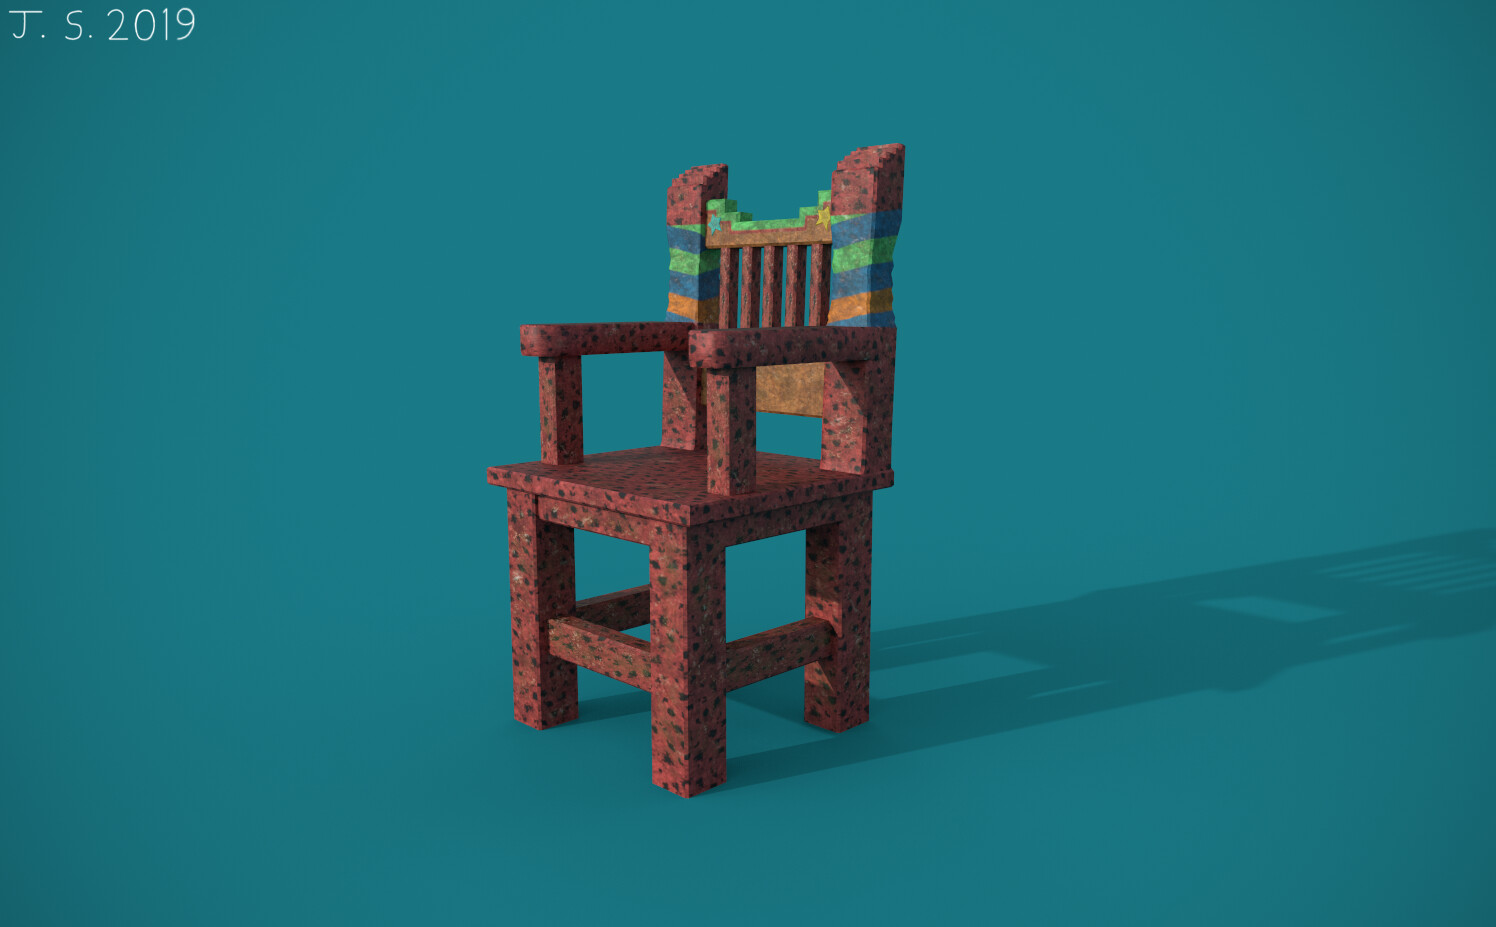 Aztec-Styled Chair Substance Painter Render